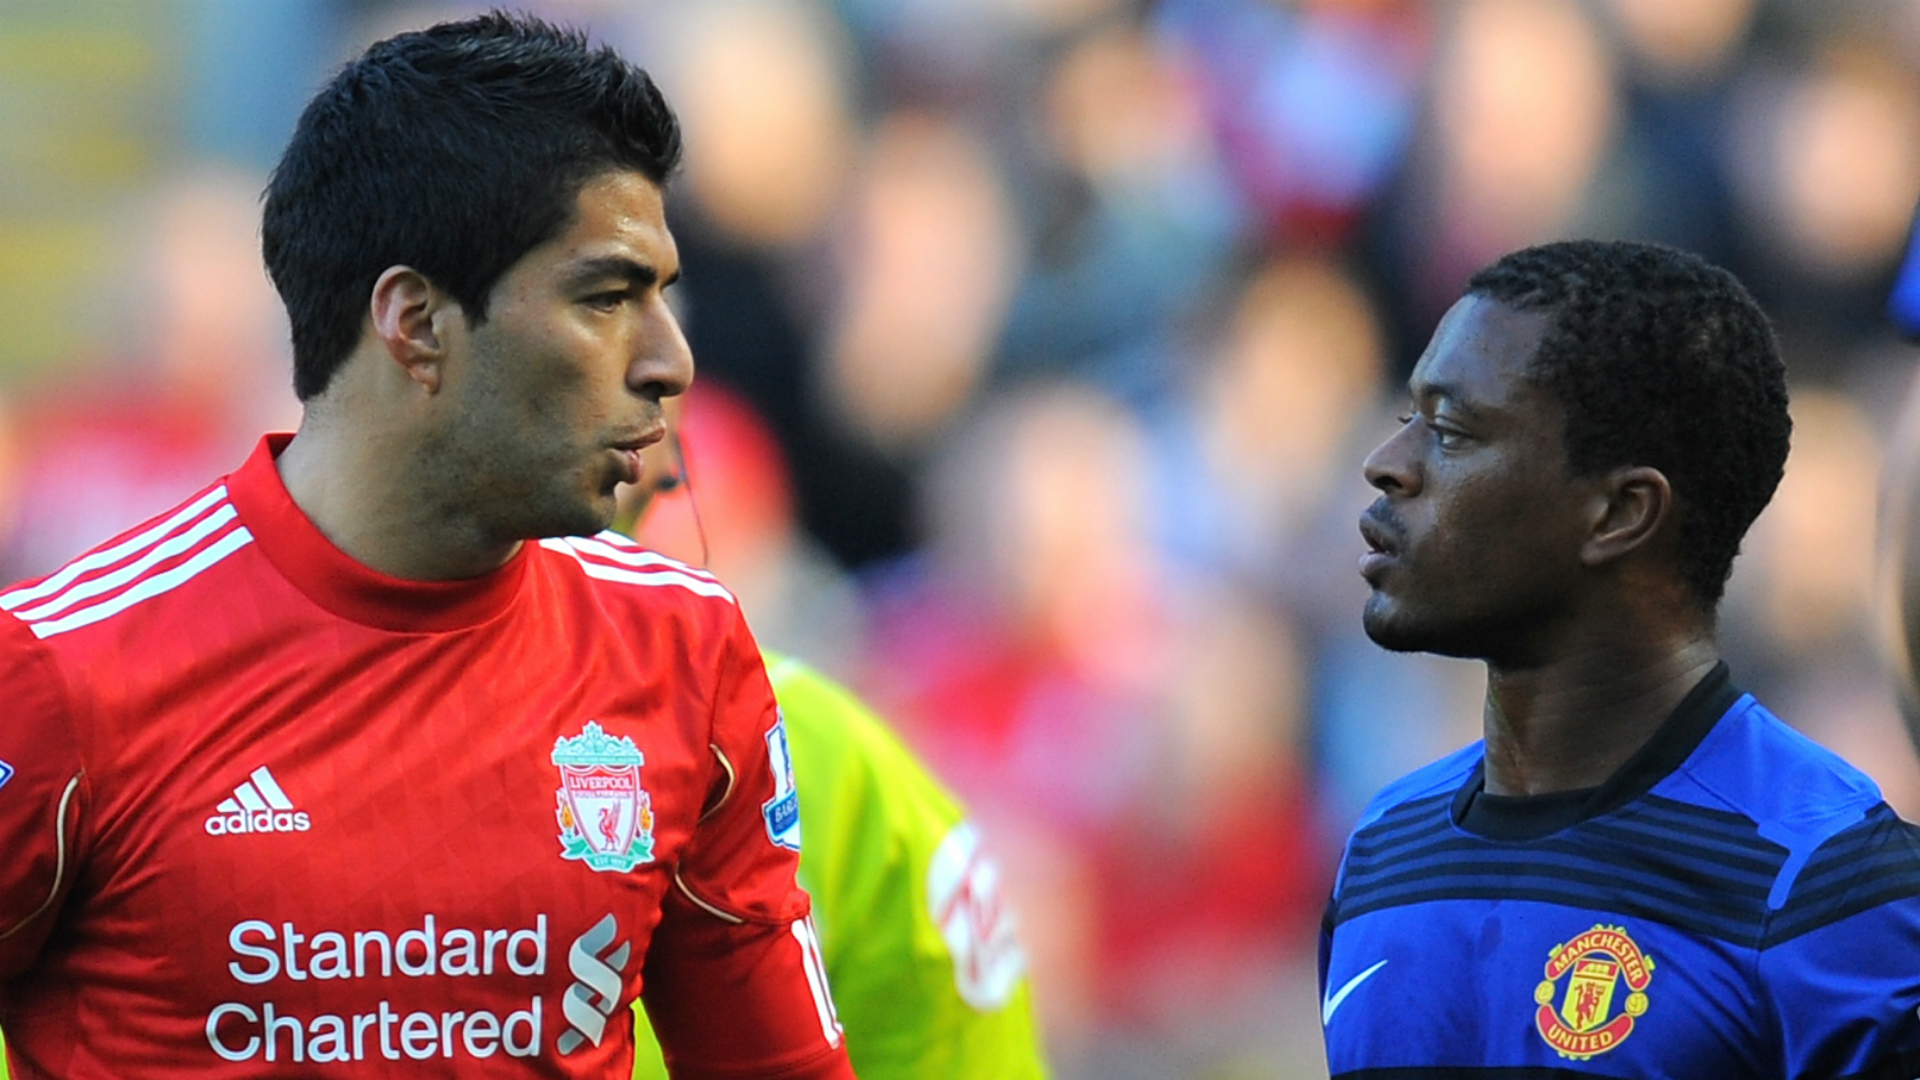 What did Luis Suarez say to Patrice Evra during infamous Manchester United v Liverpool match?